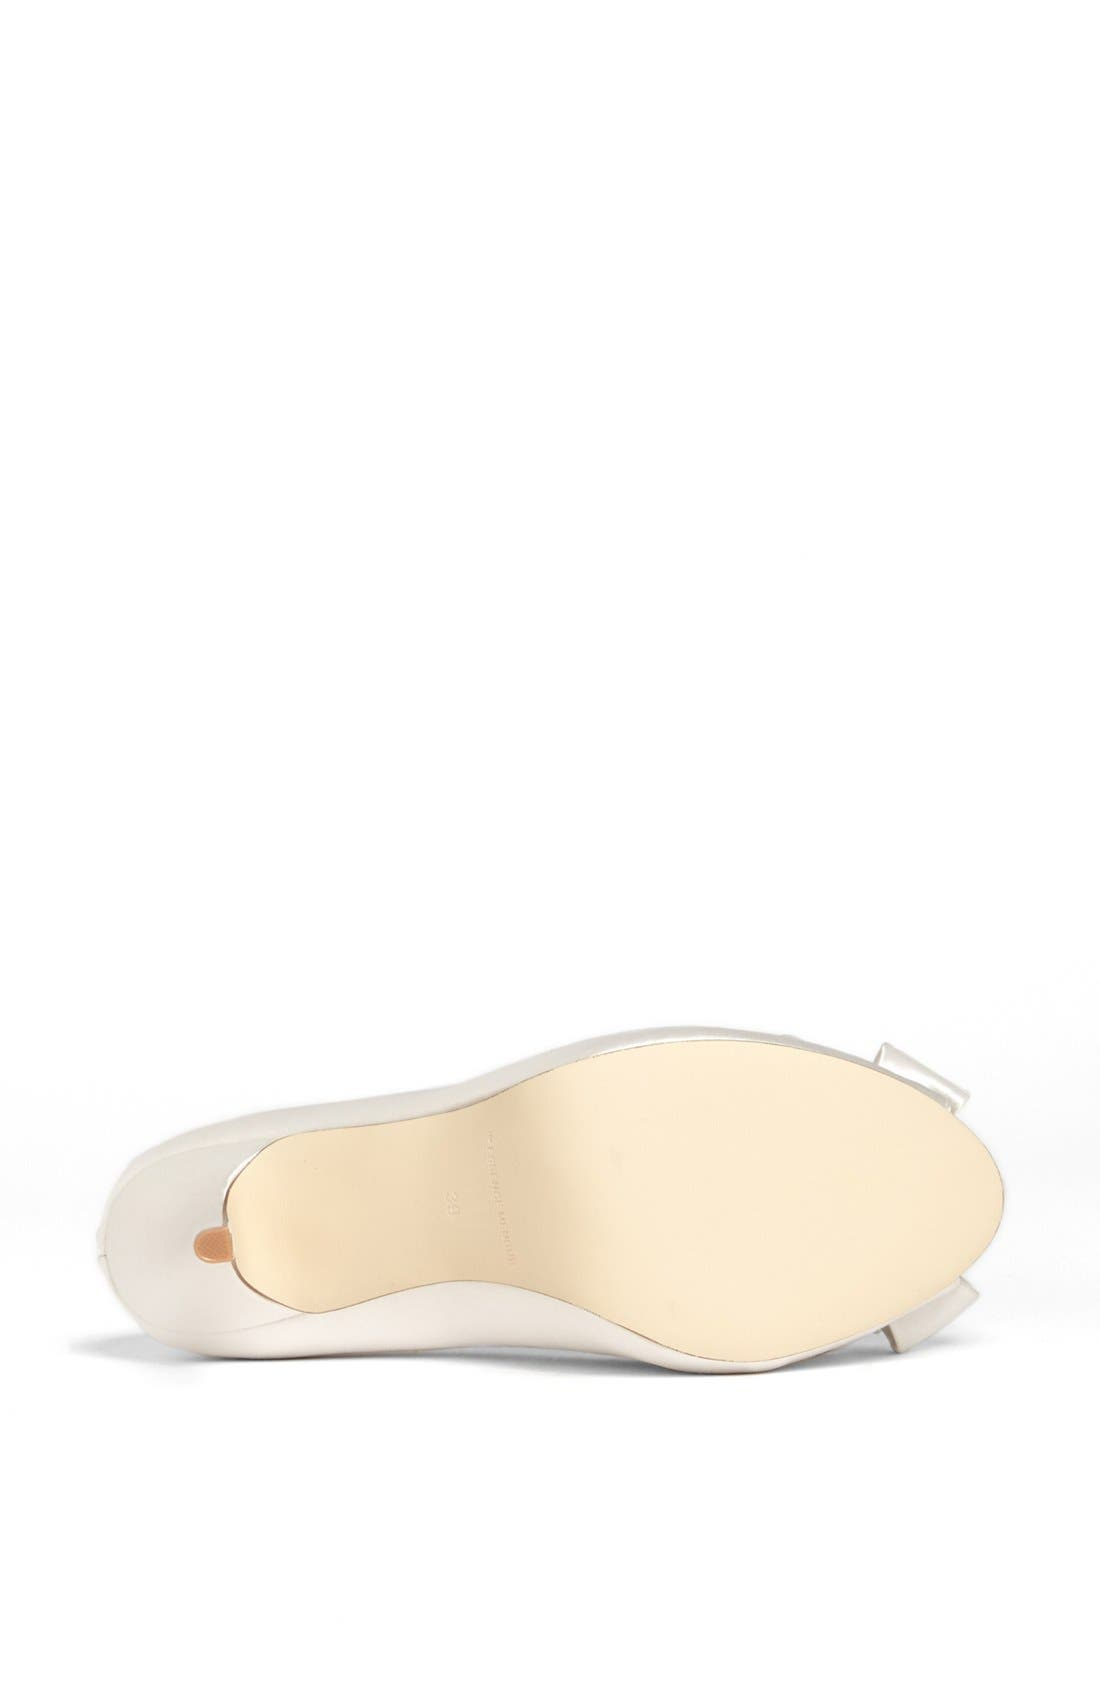 Bow Peep Toe Pump,                             Alternate thumbnail 4, color,                             Ivory